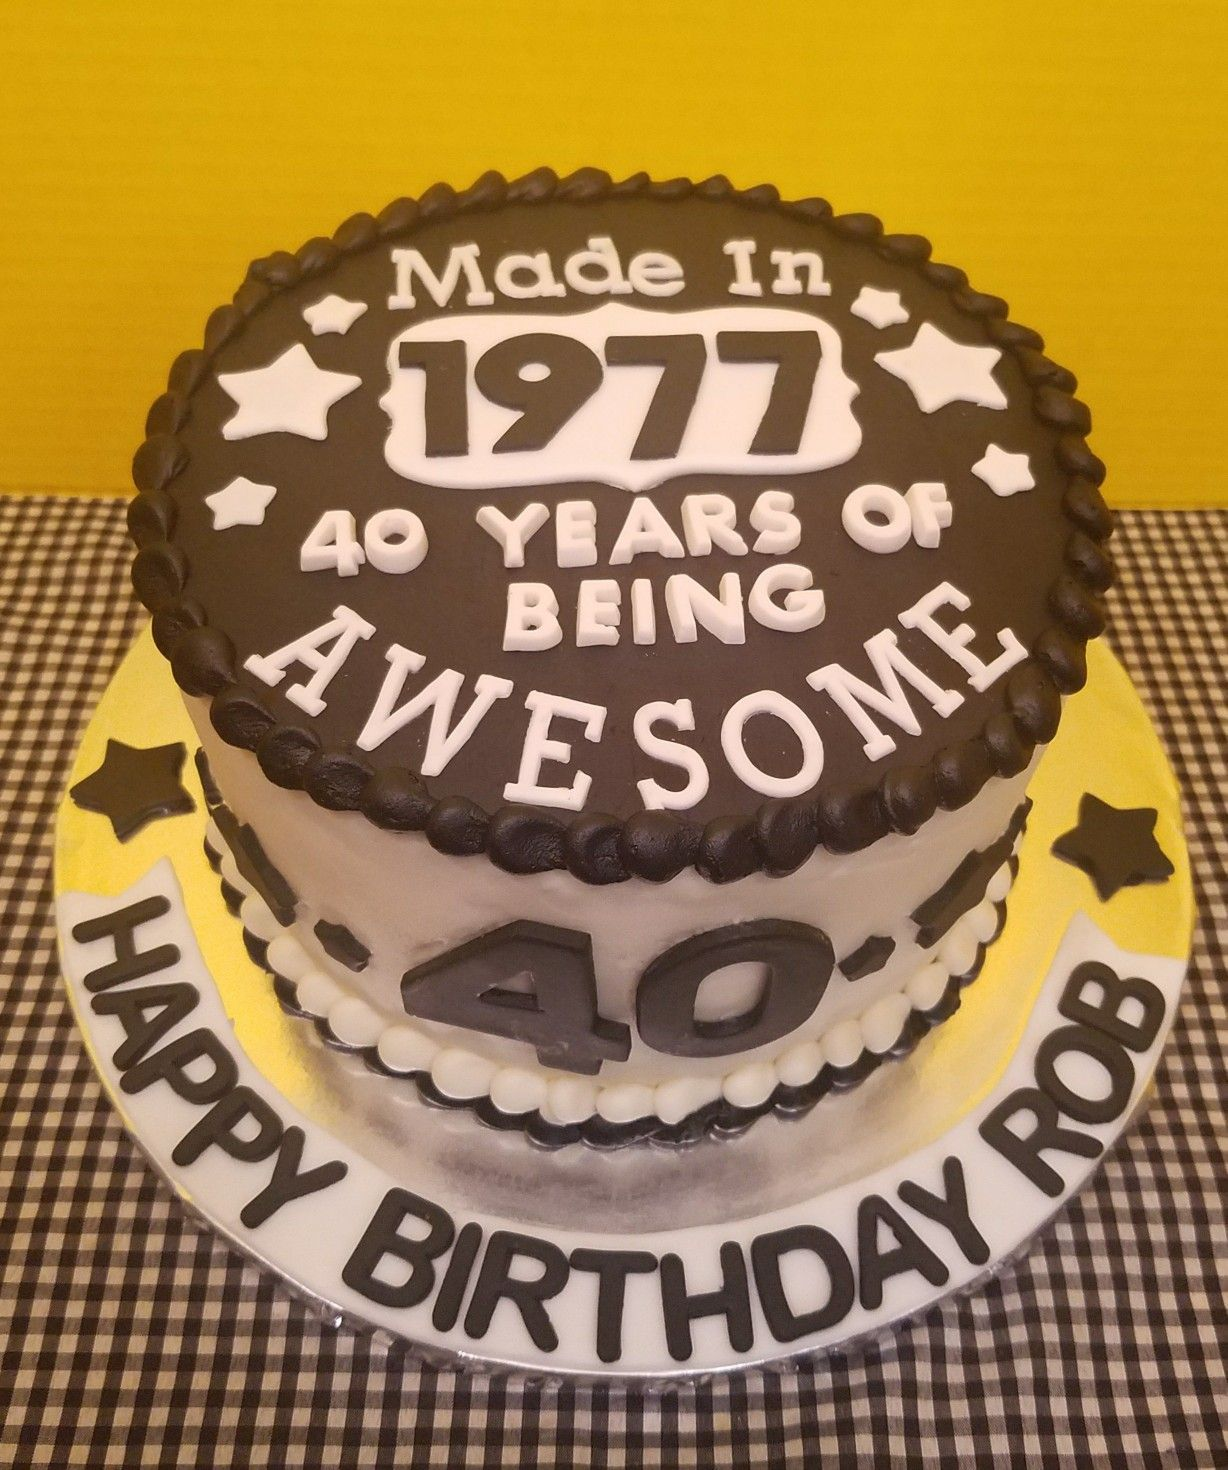 40th Birthday Cakes Ideas For Him Cakes And Cookies Gallery